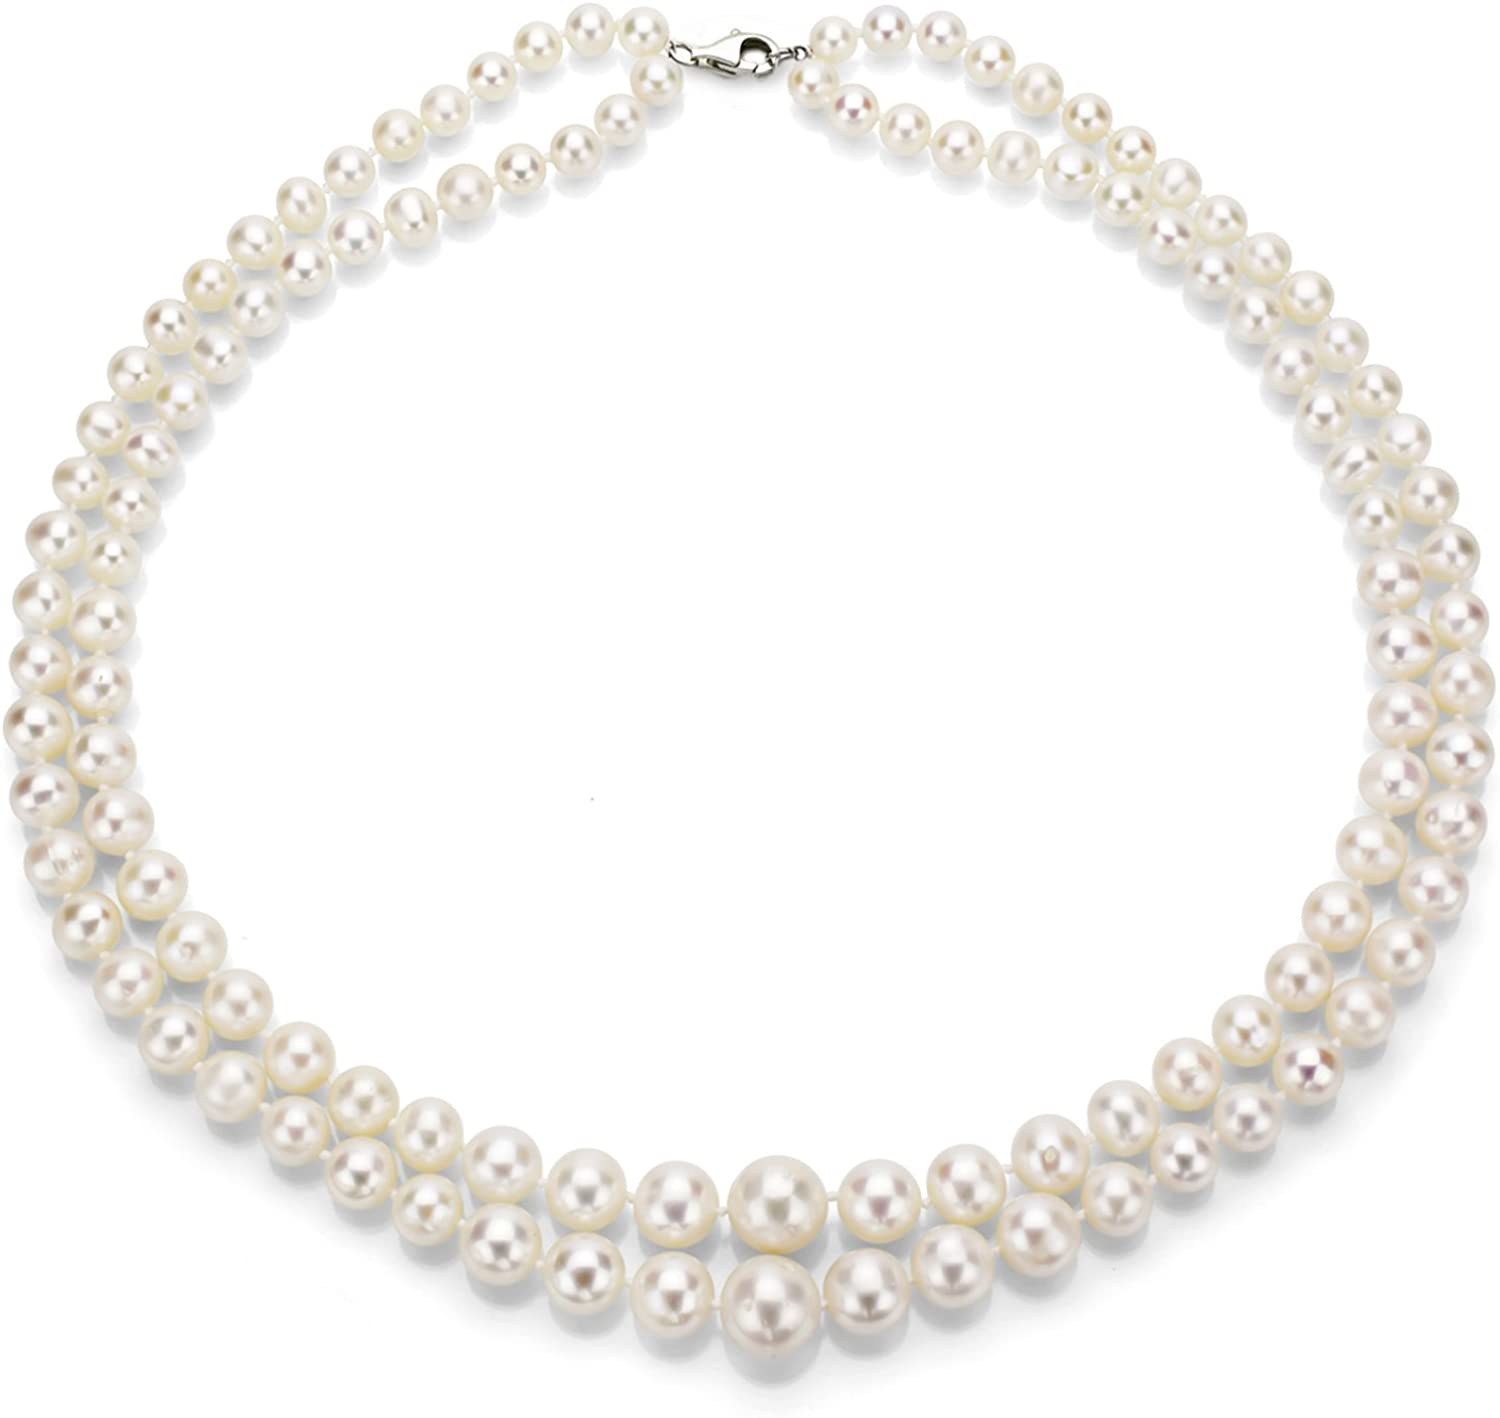 Sterling Silver Sales Graduated 4-8.5mm Freshwater Cultured White Max 45% OFF Pear